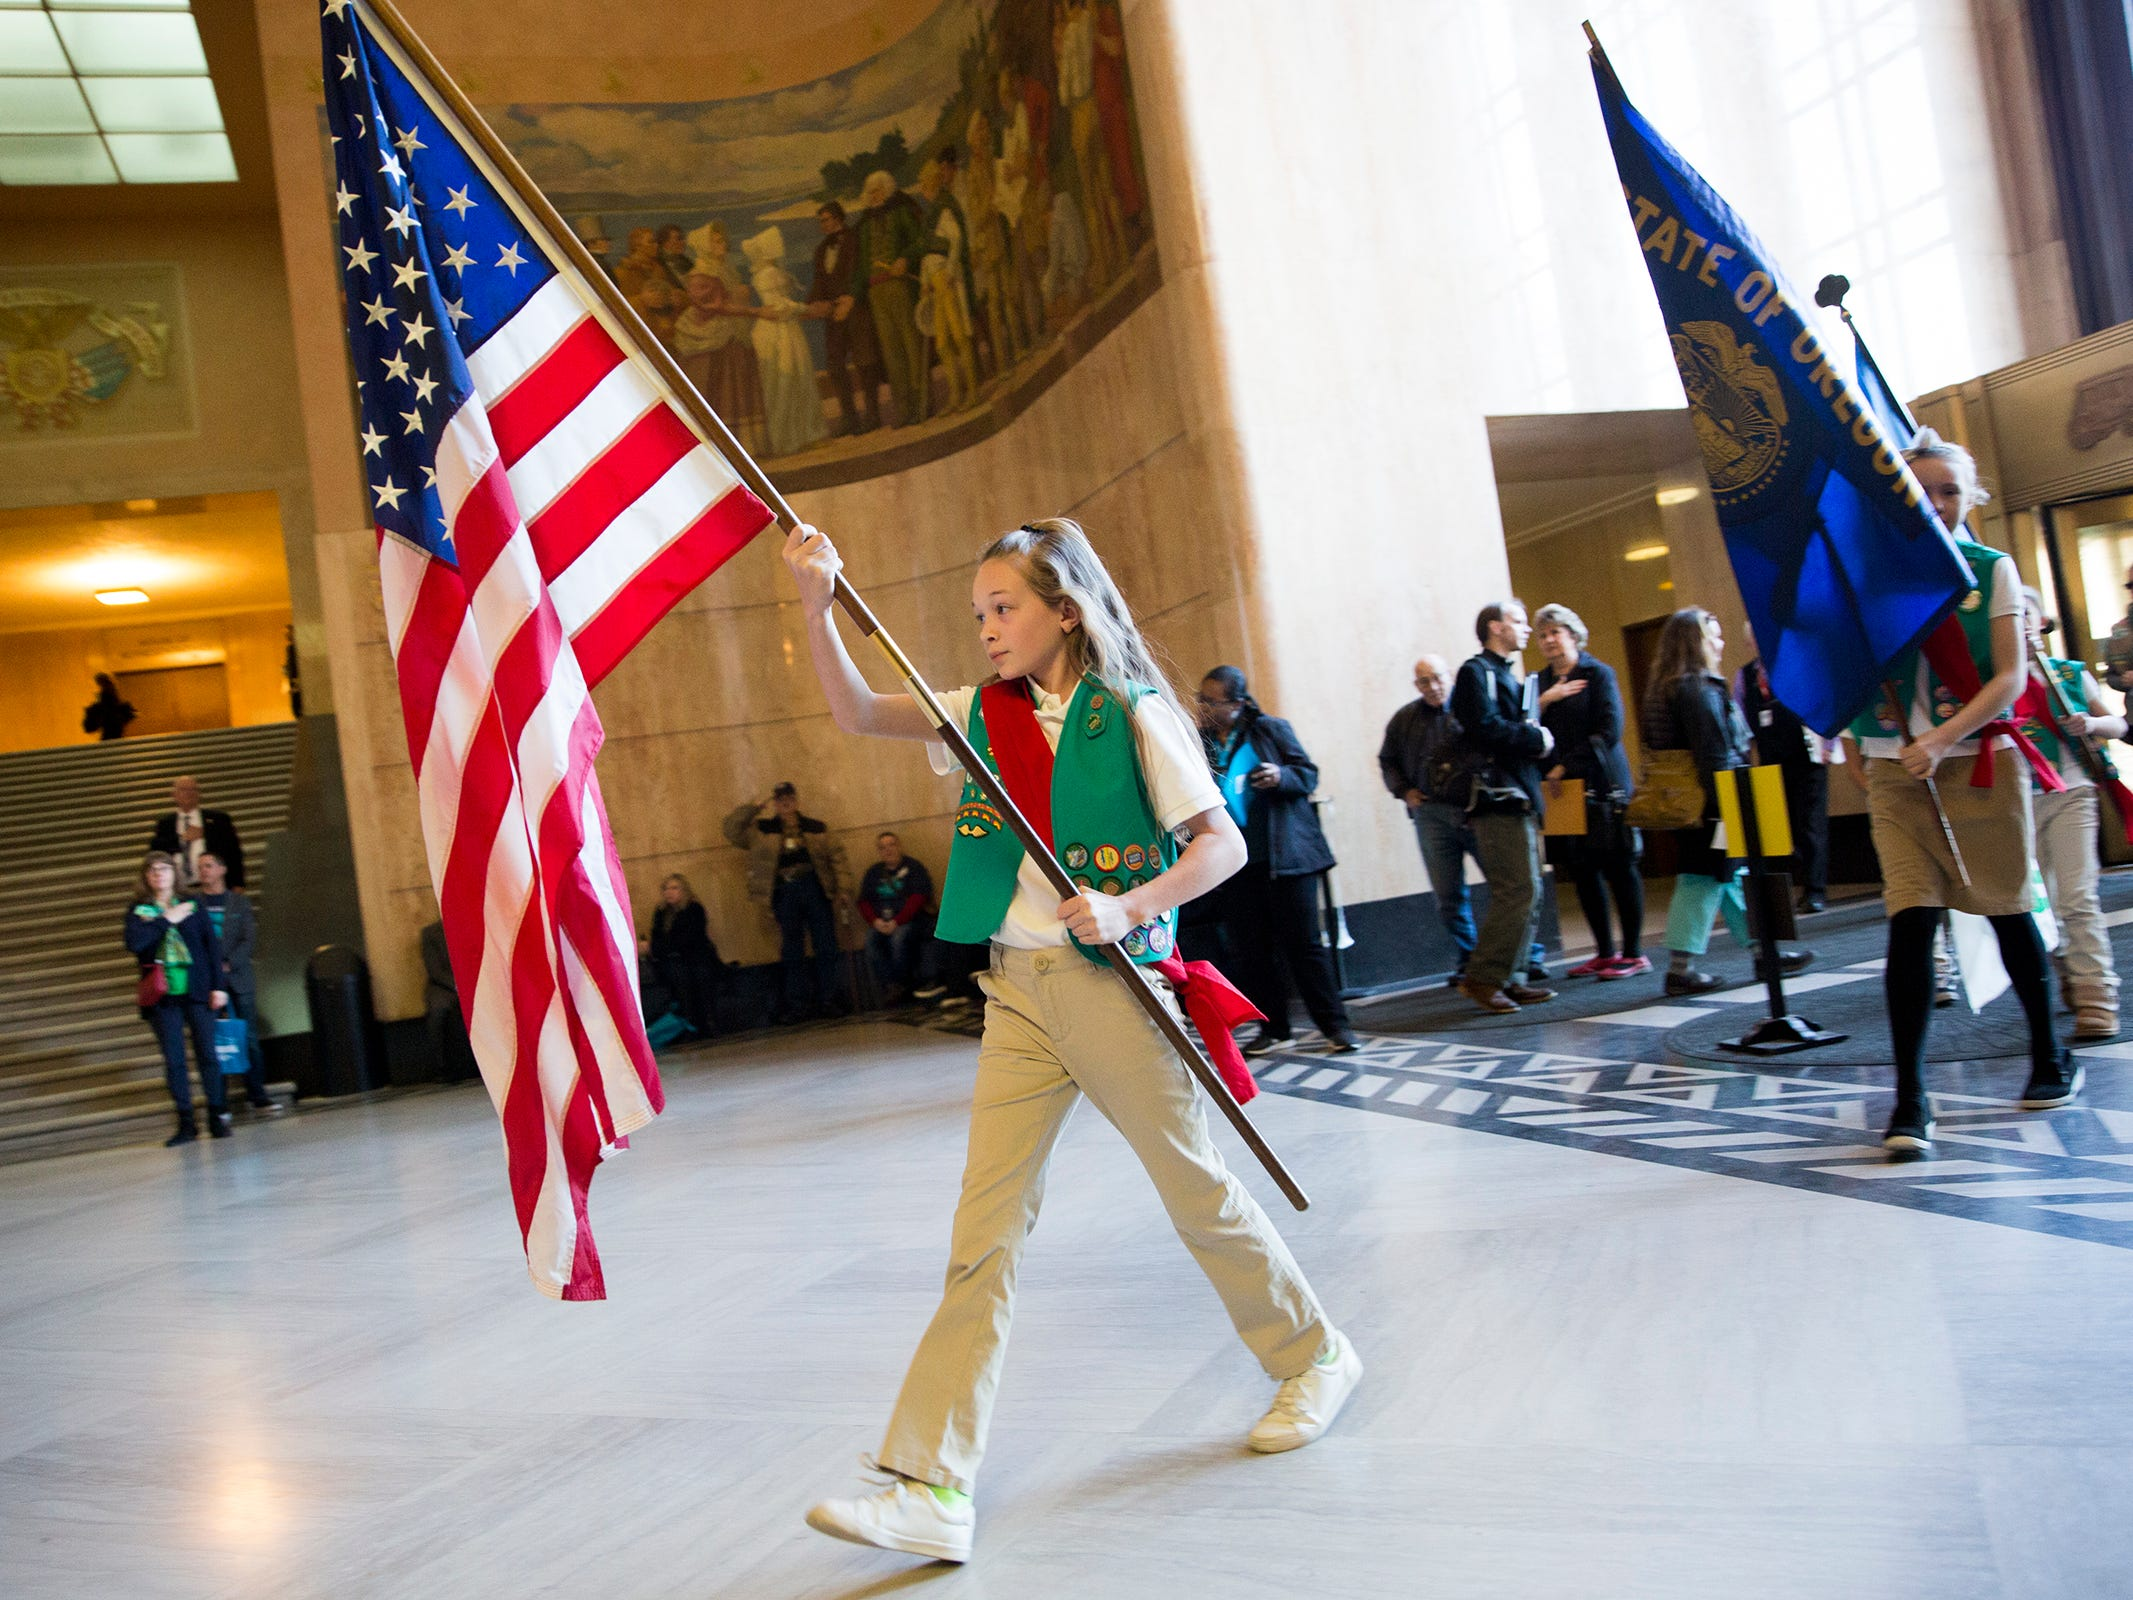 Addison Peterson, of Albany, carries in a flag before reciting the pledge of allegiance during Girl Scout Leadership Day at the Oregon State Capitol in Salem March 12, 2019.